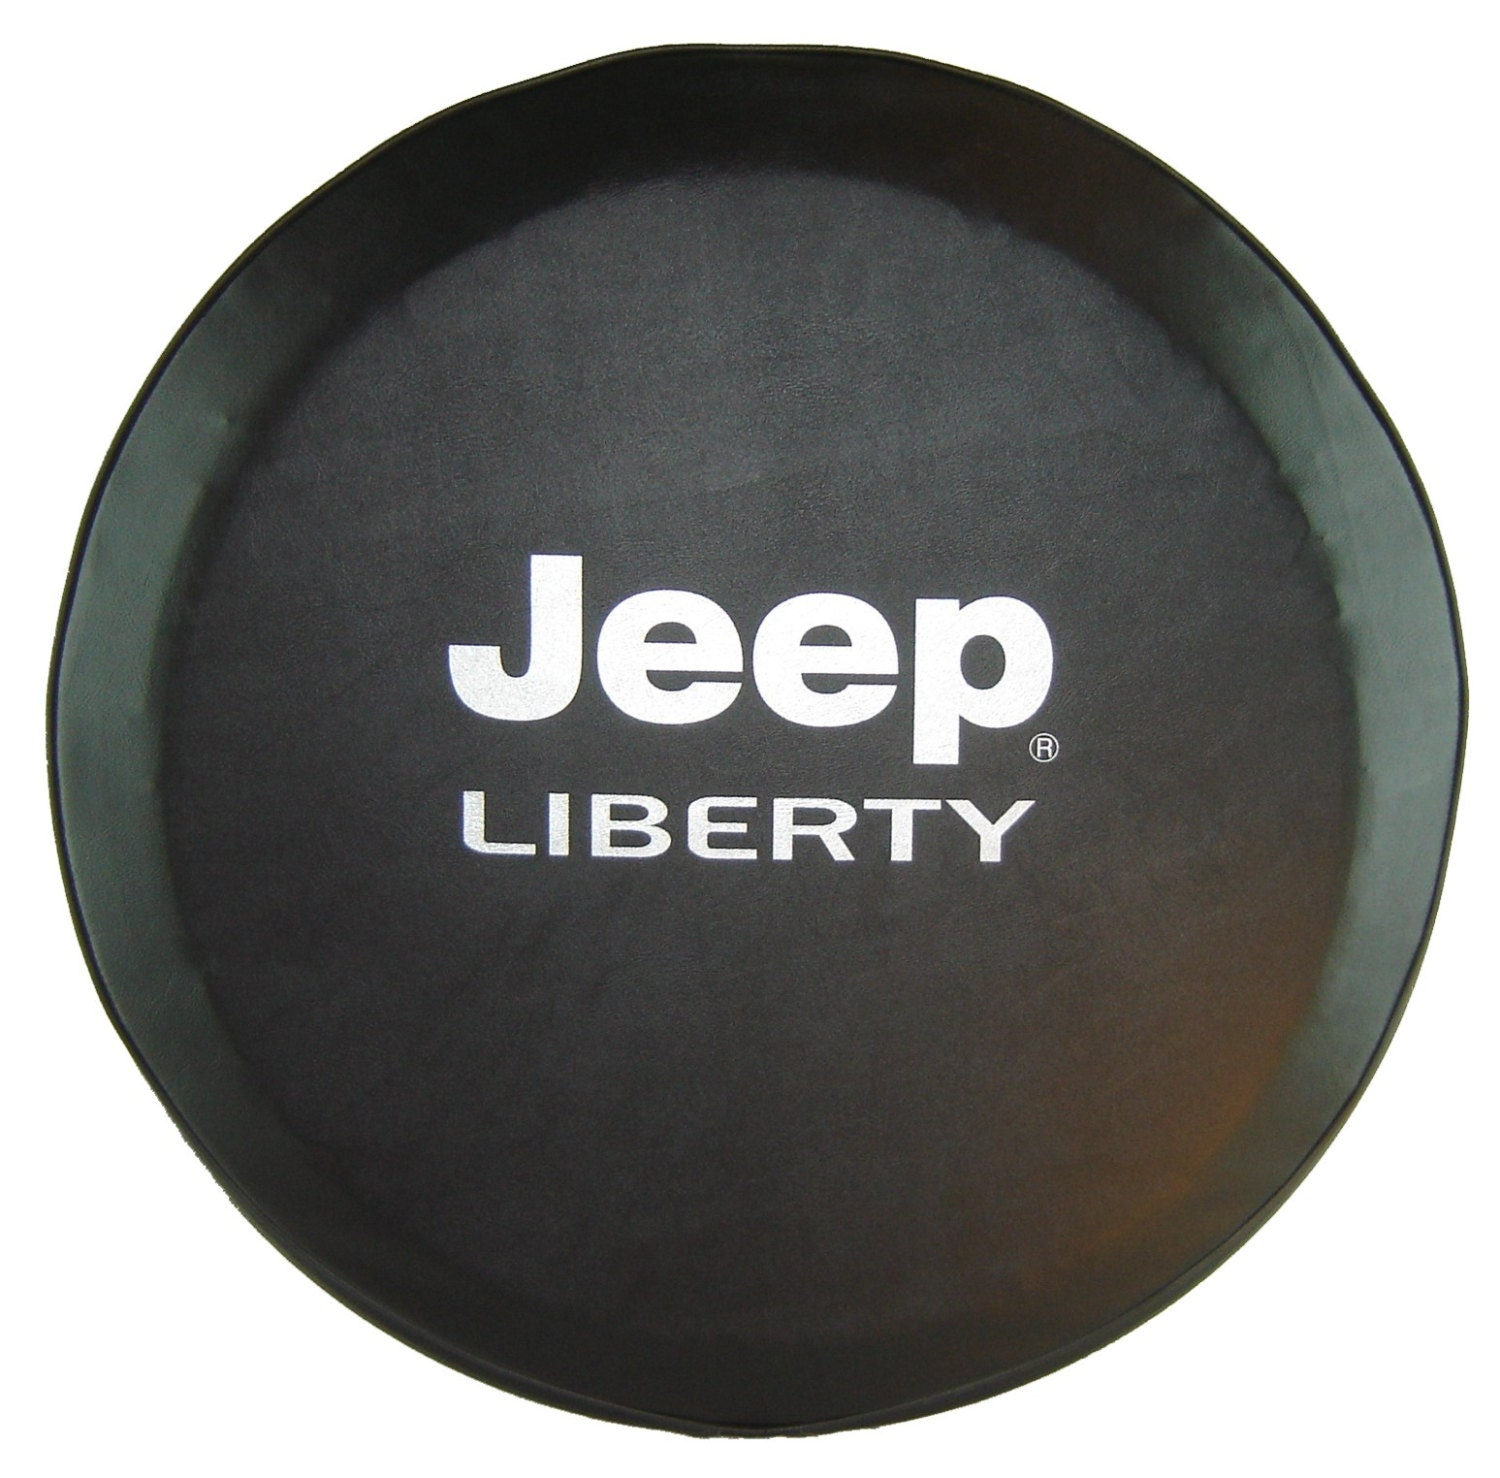 abc series jeep liberty tire cover silver metallic logo. Cars Review. Best American Auto & Cars Review